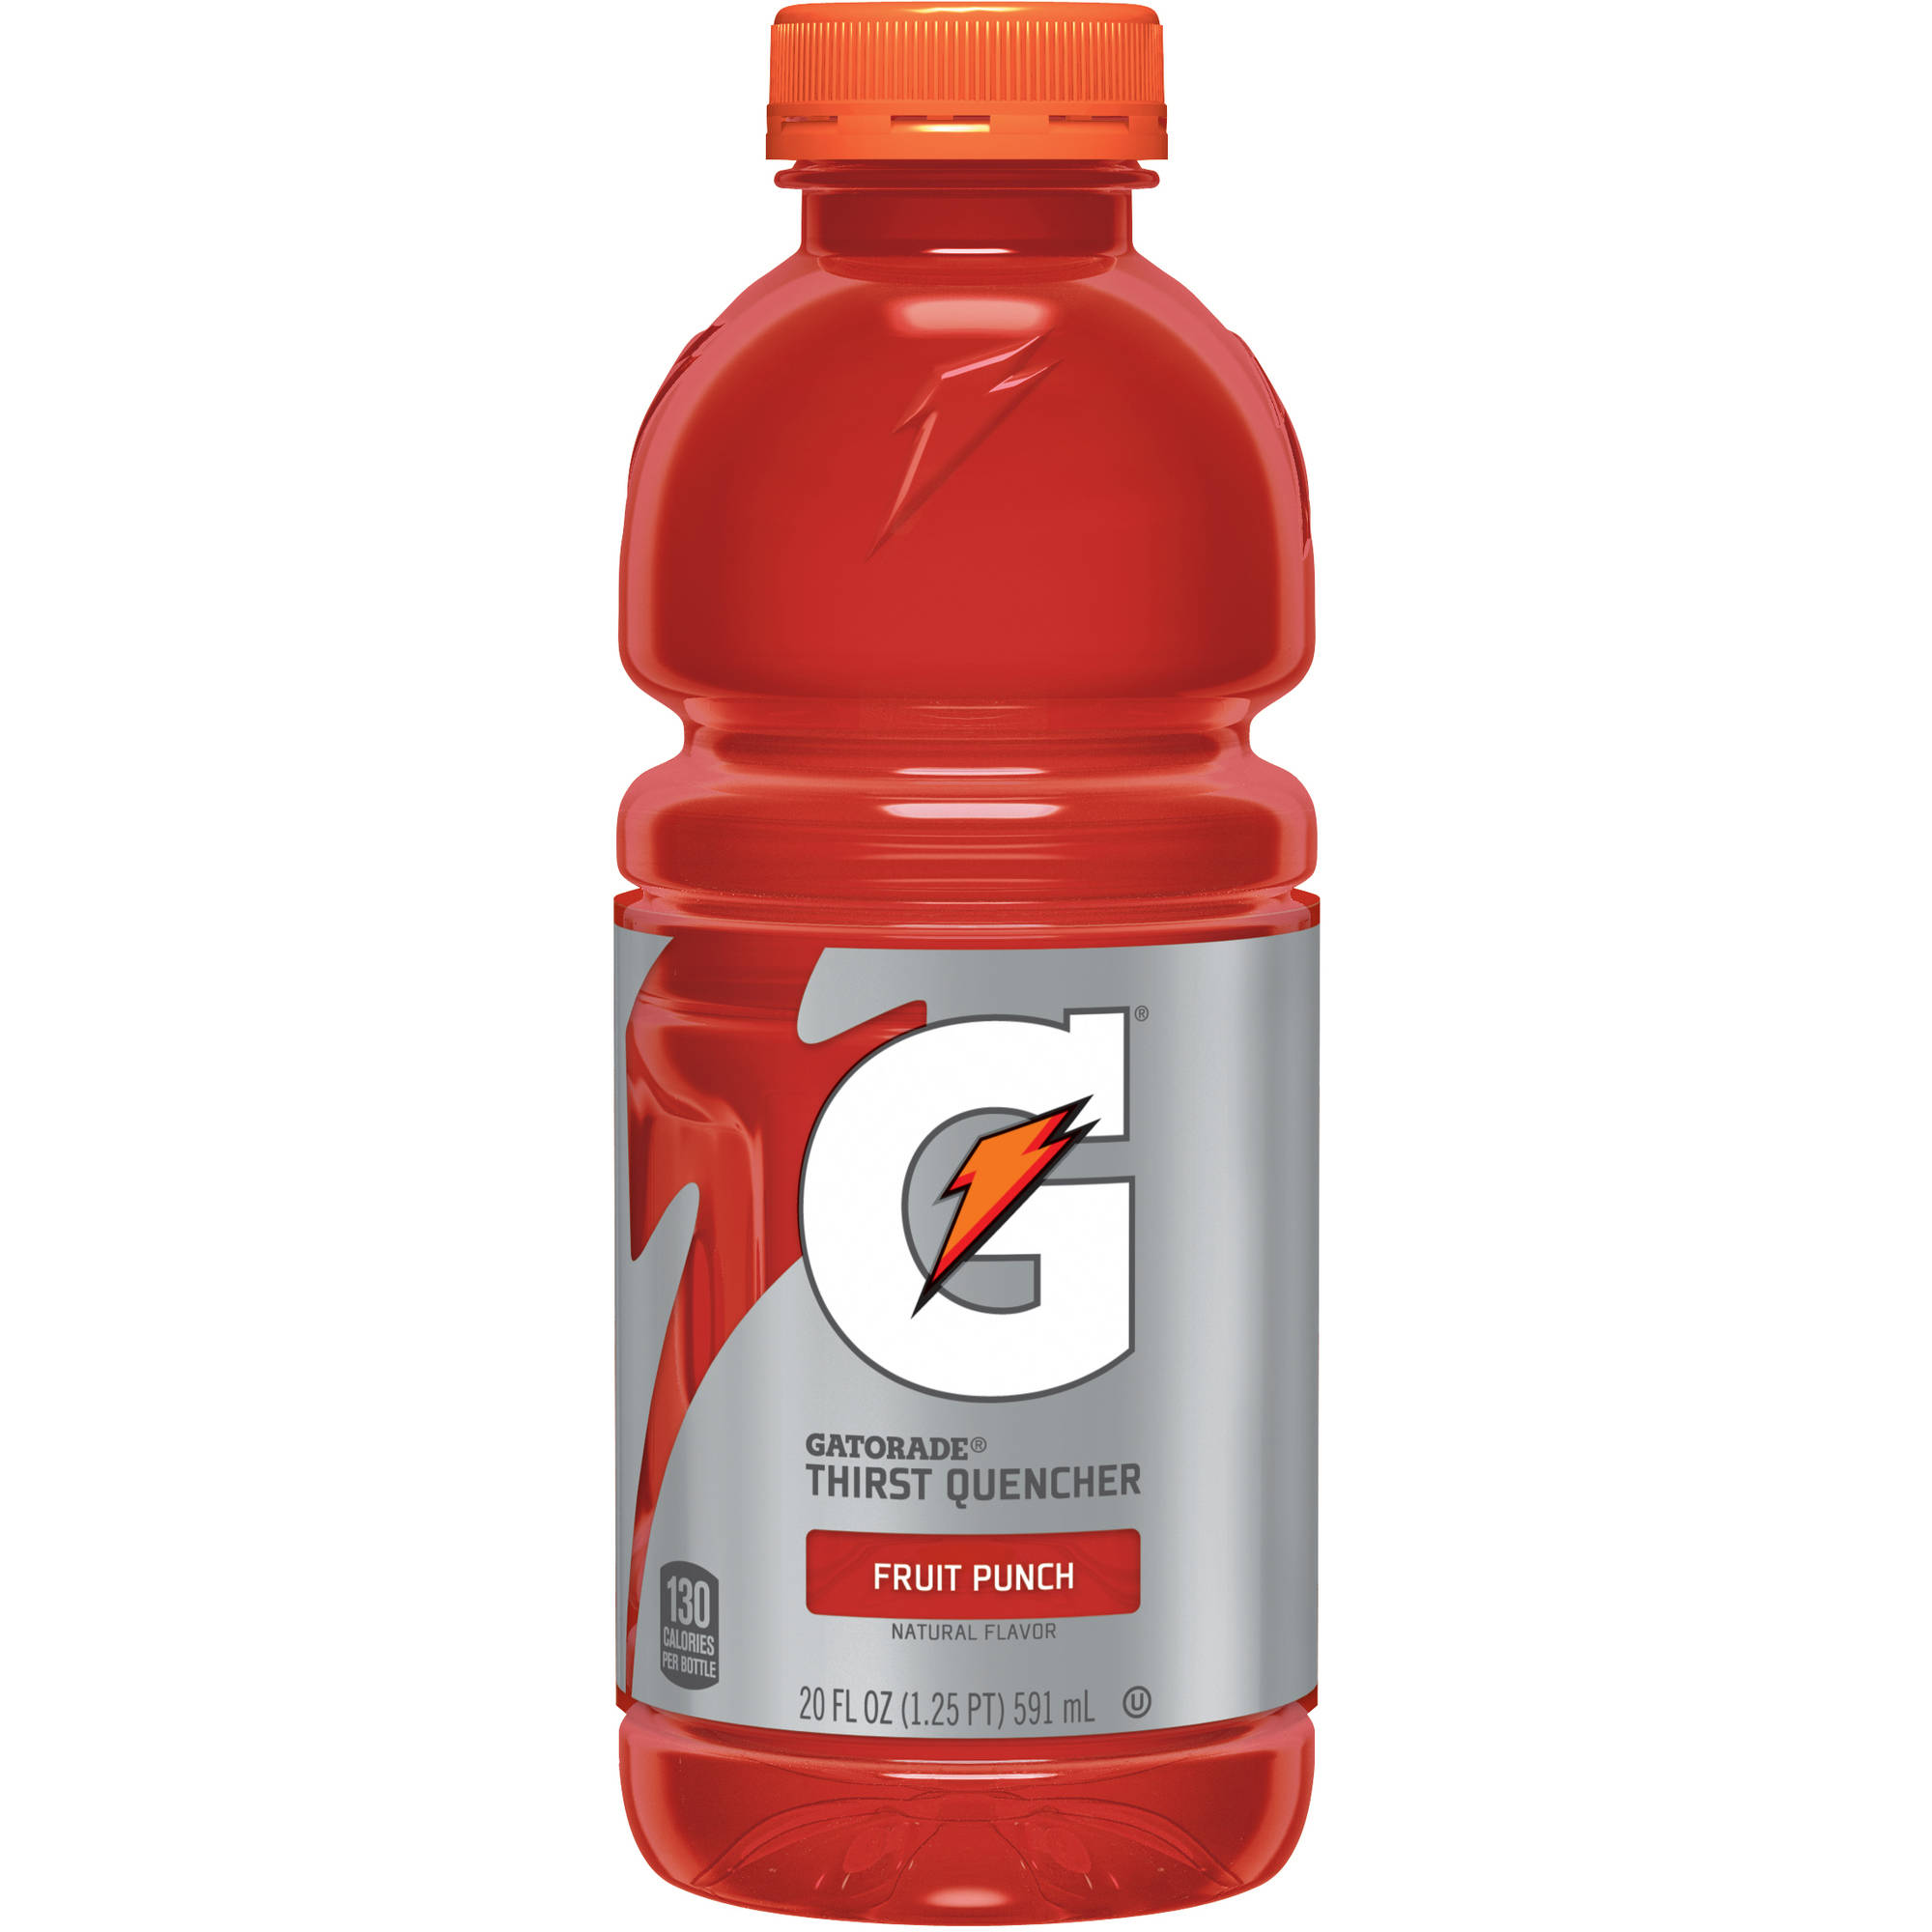 Gatorade G Fruit Punch Thirst Quencher Sports Drink, 20 fl oz, 24-Pack